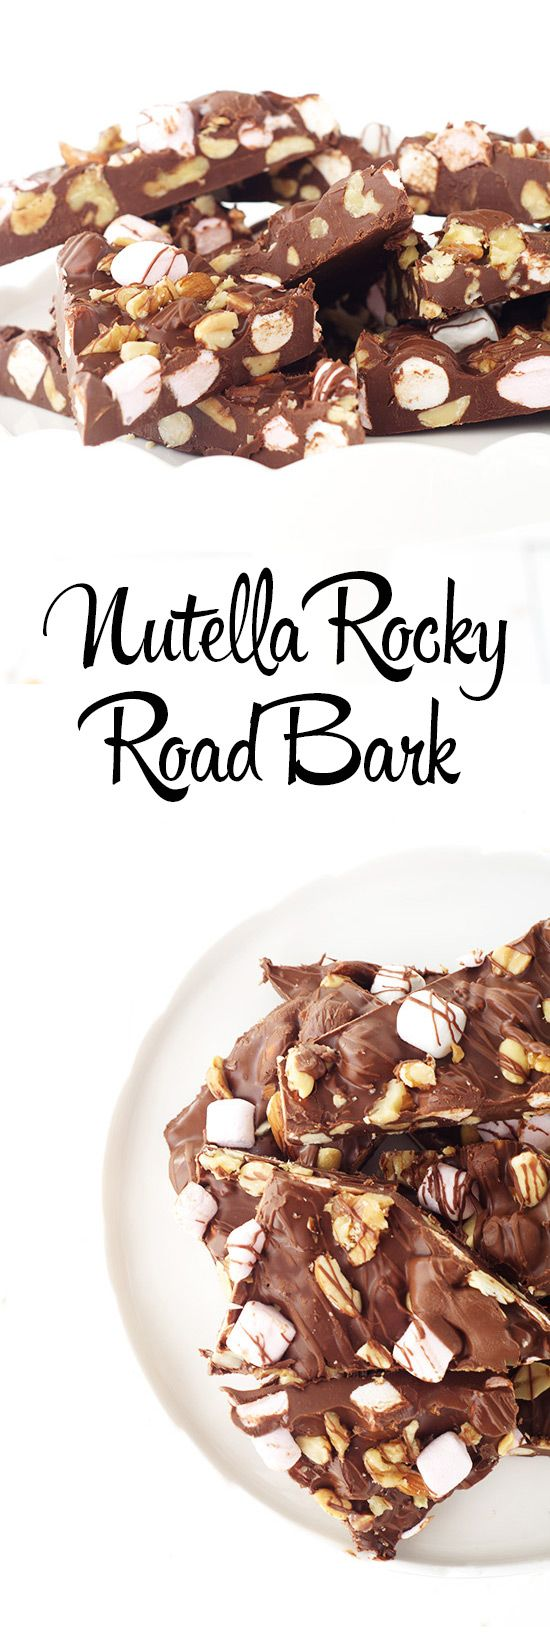 The BEST Rocky Road ever, thanks to the most amazing ingredient - Nutella!